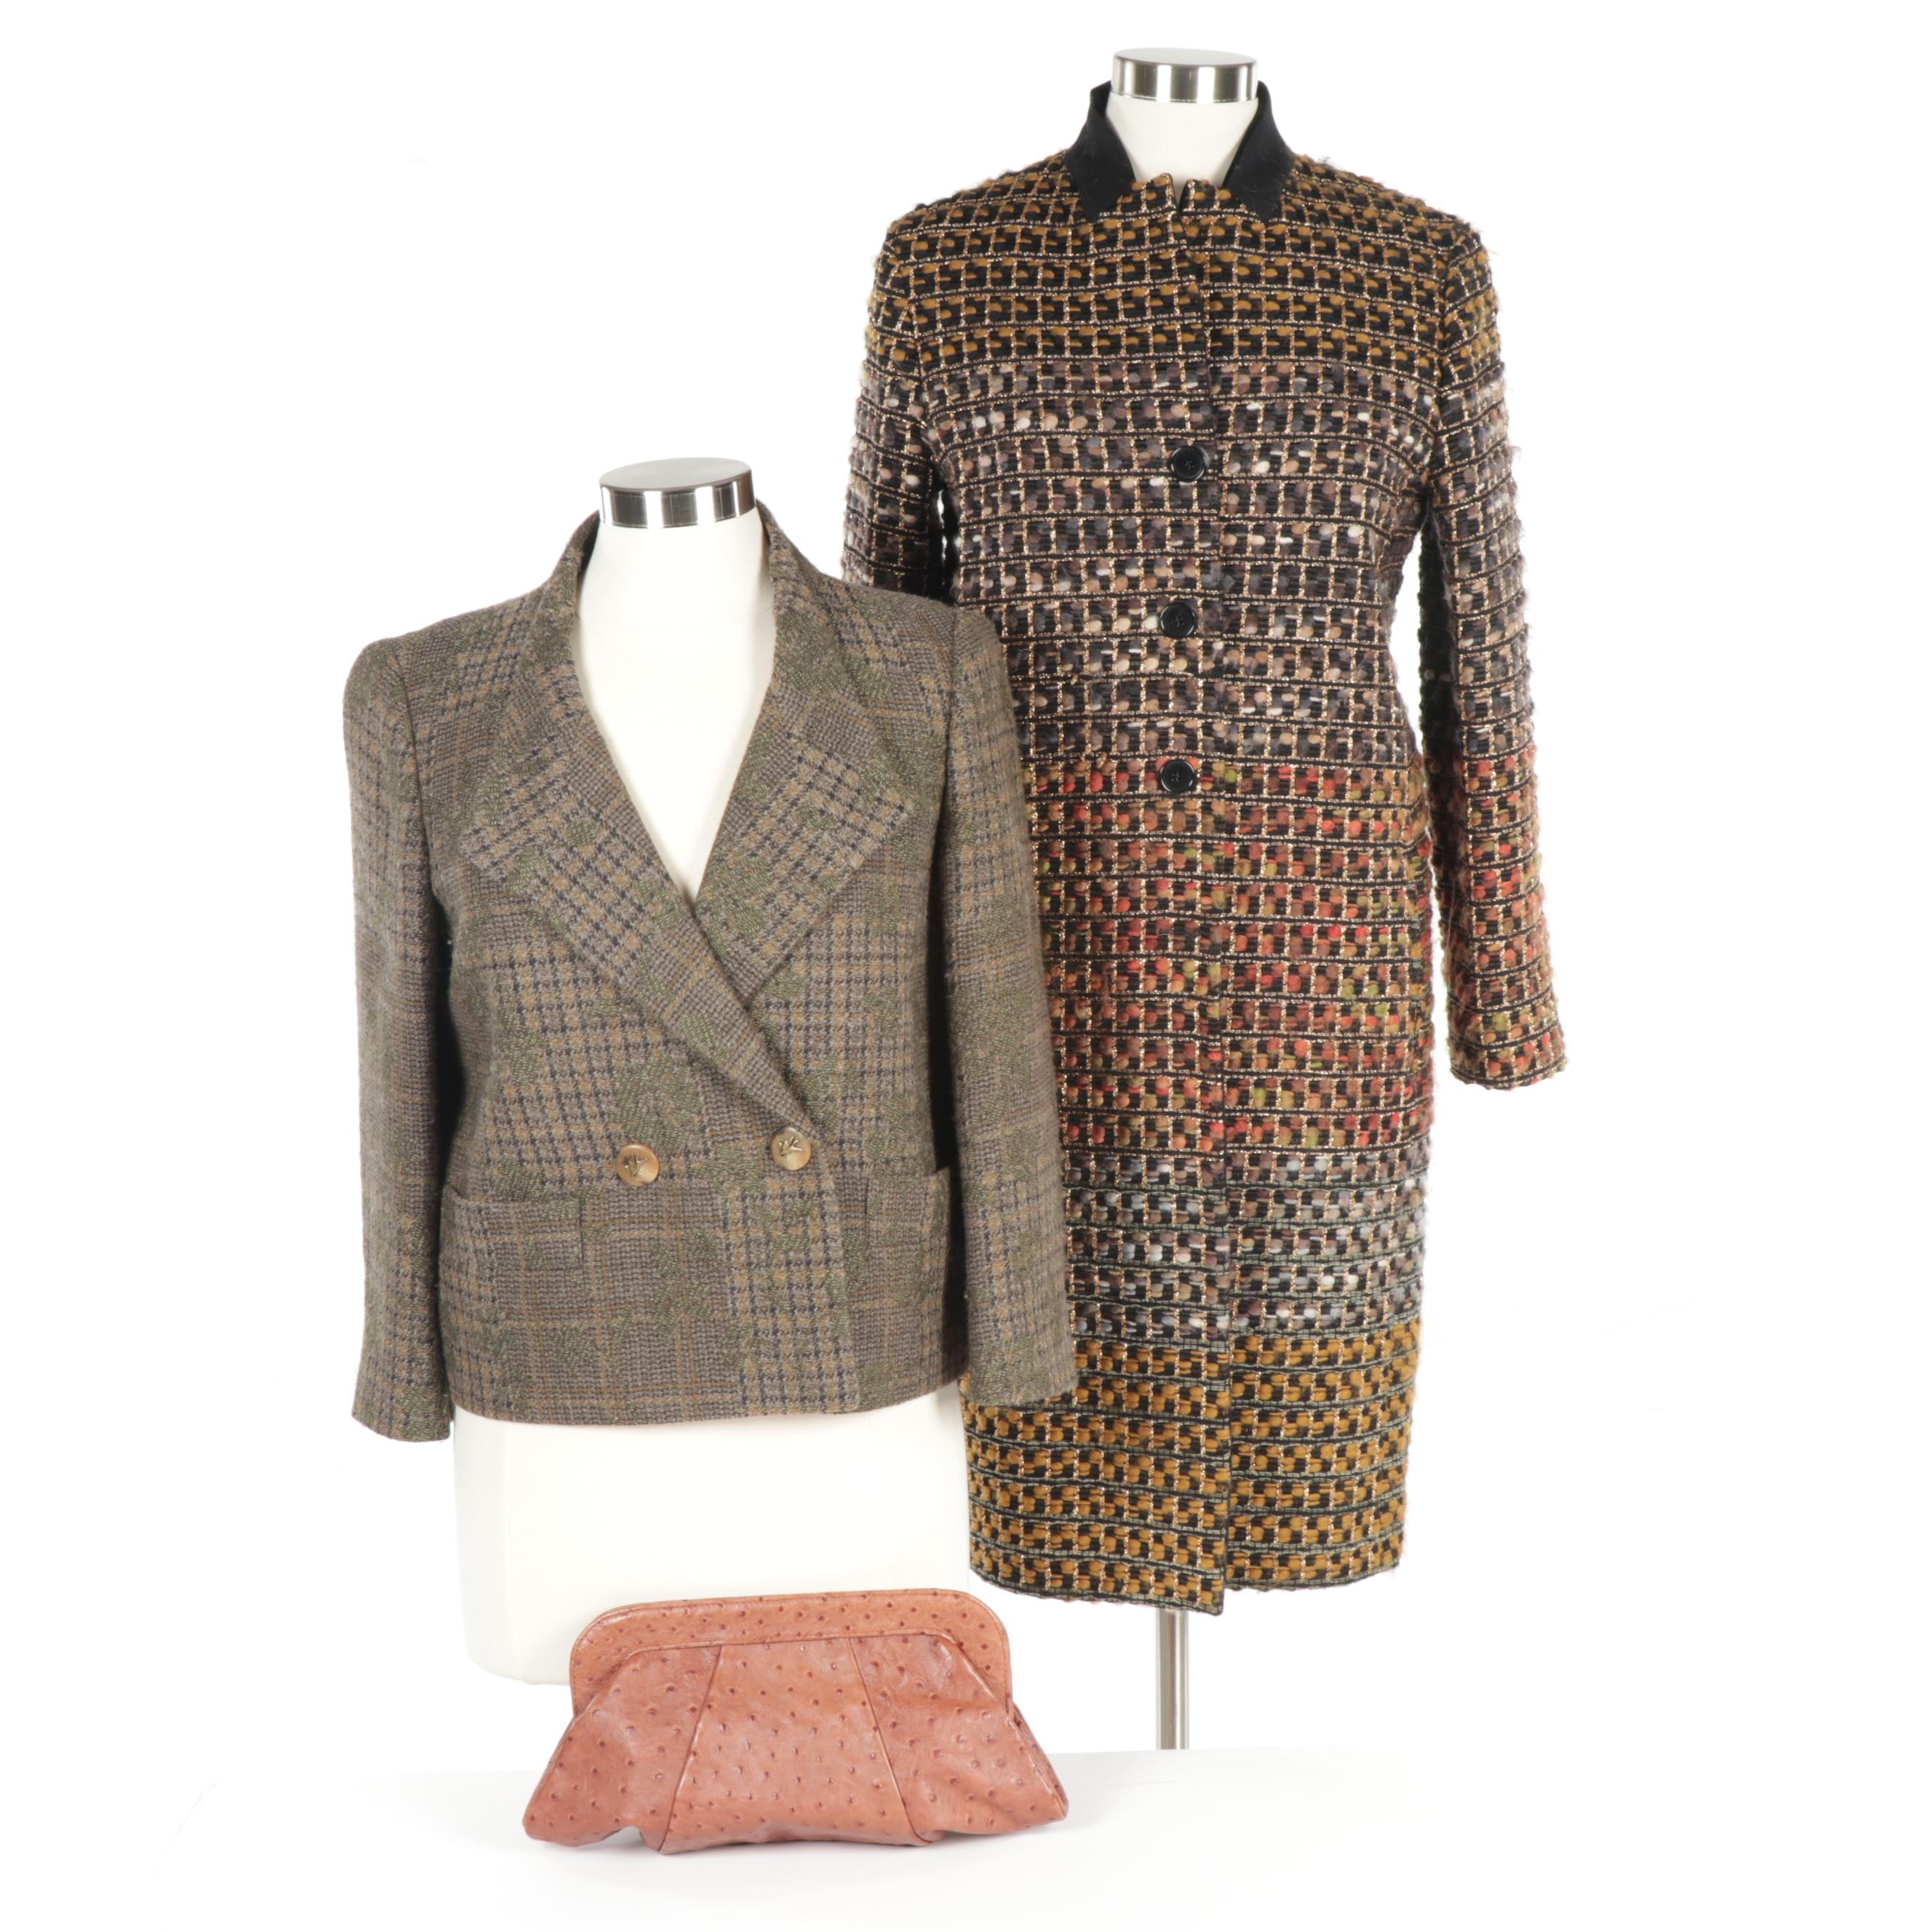 Women's Etro Wool Outerwear, Made in Italy and Lauren Merkin Ostrich Skin Clutch